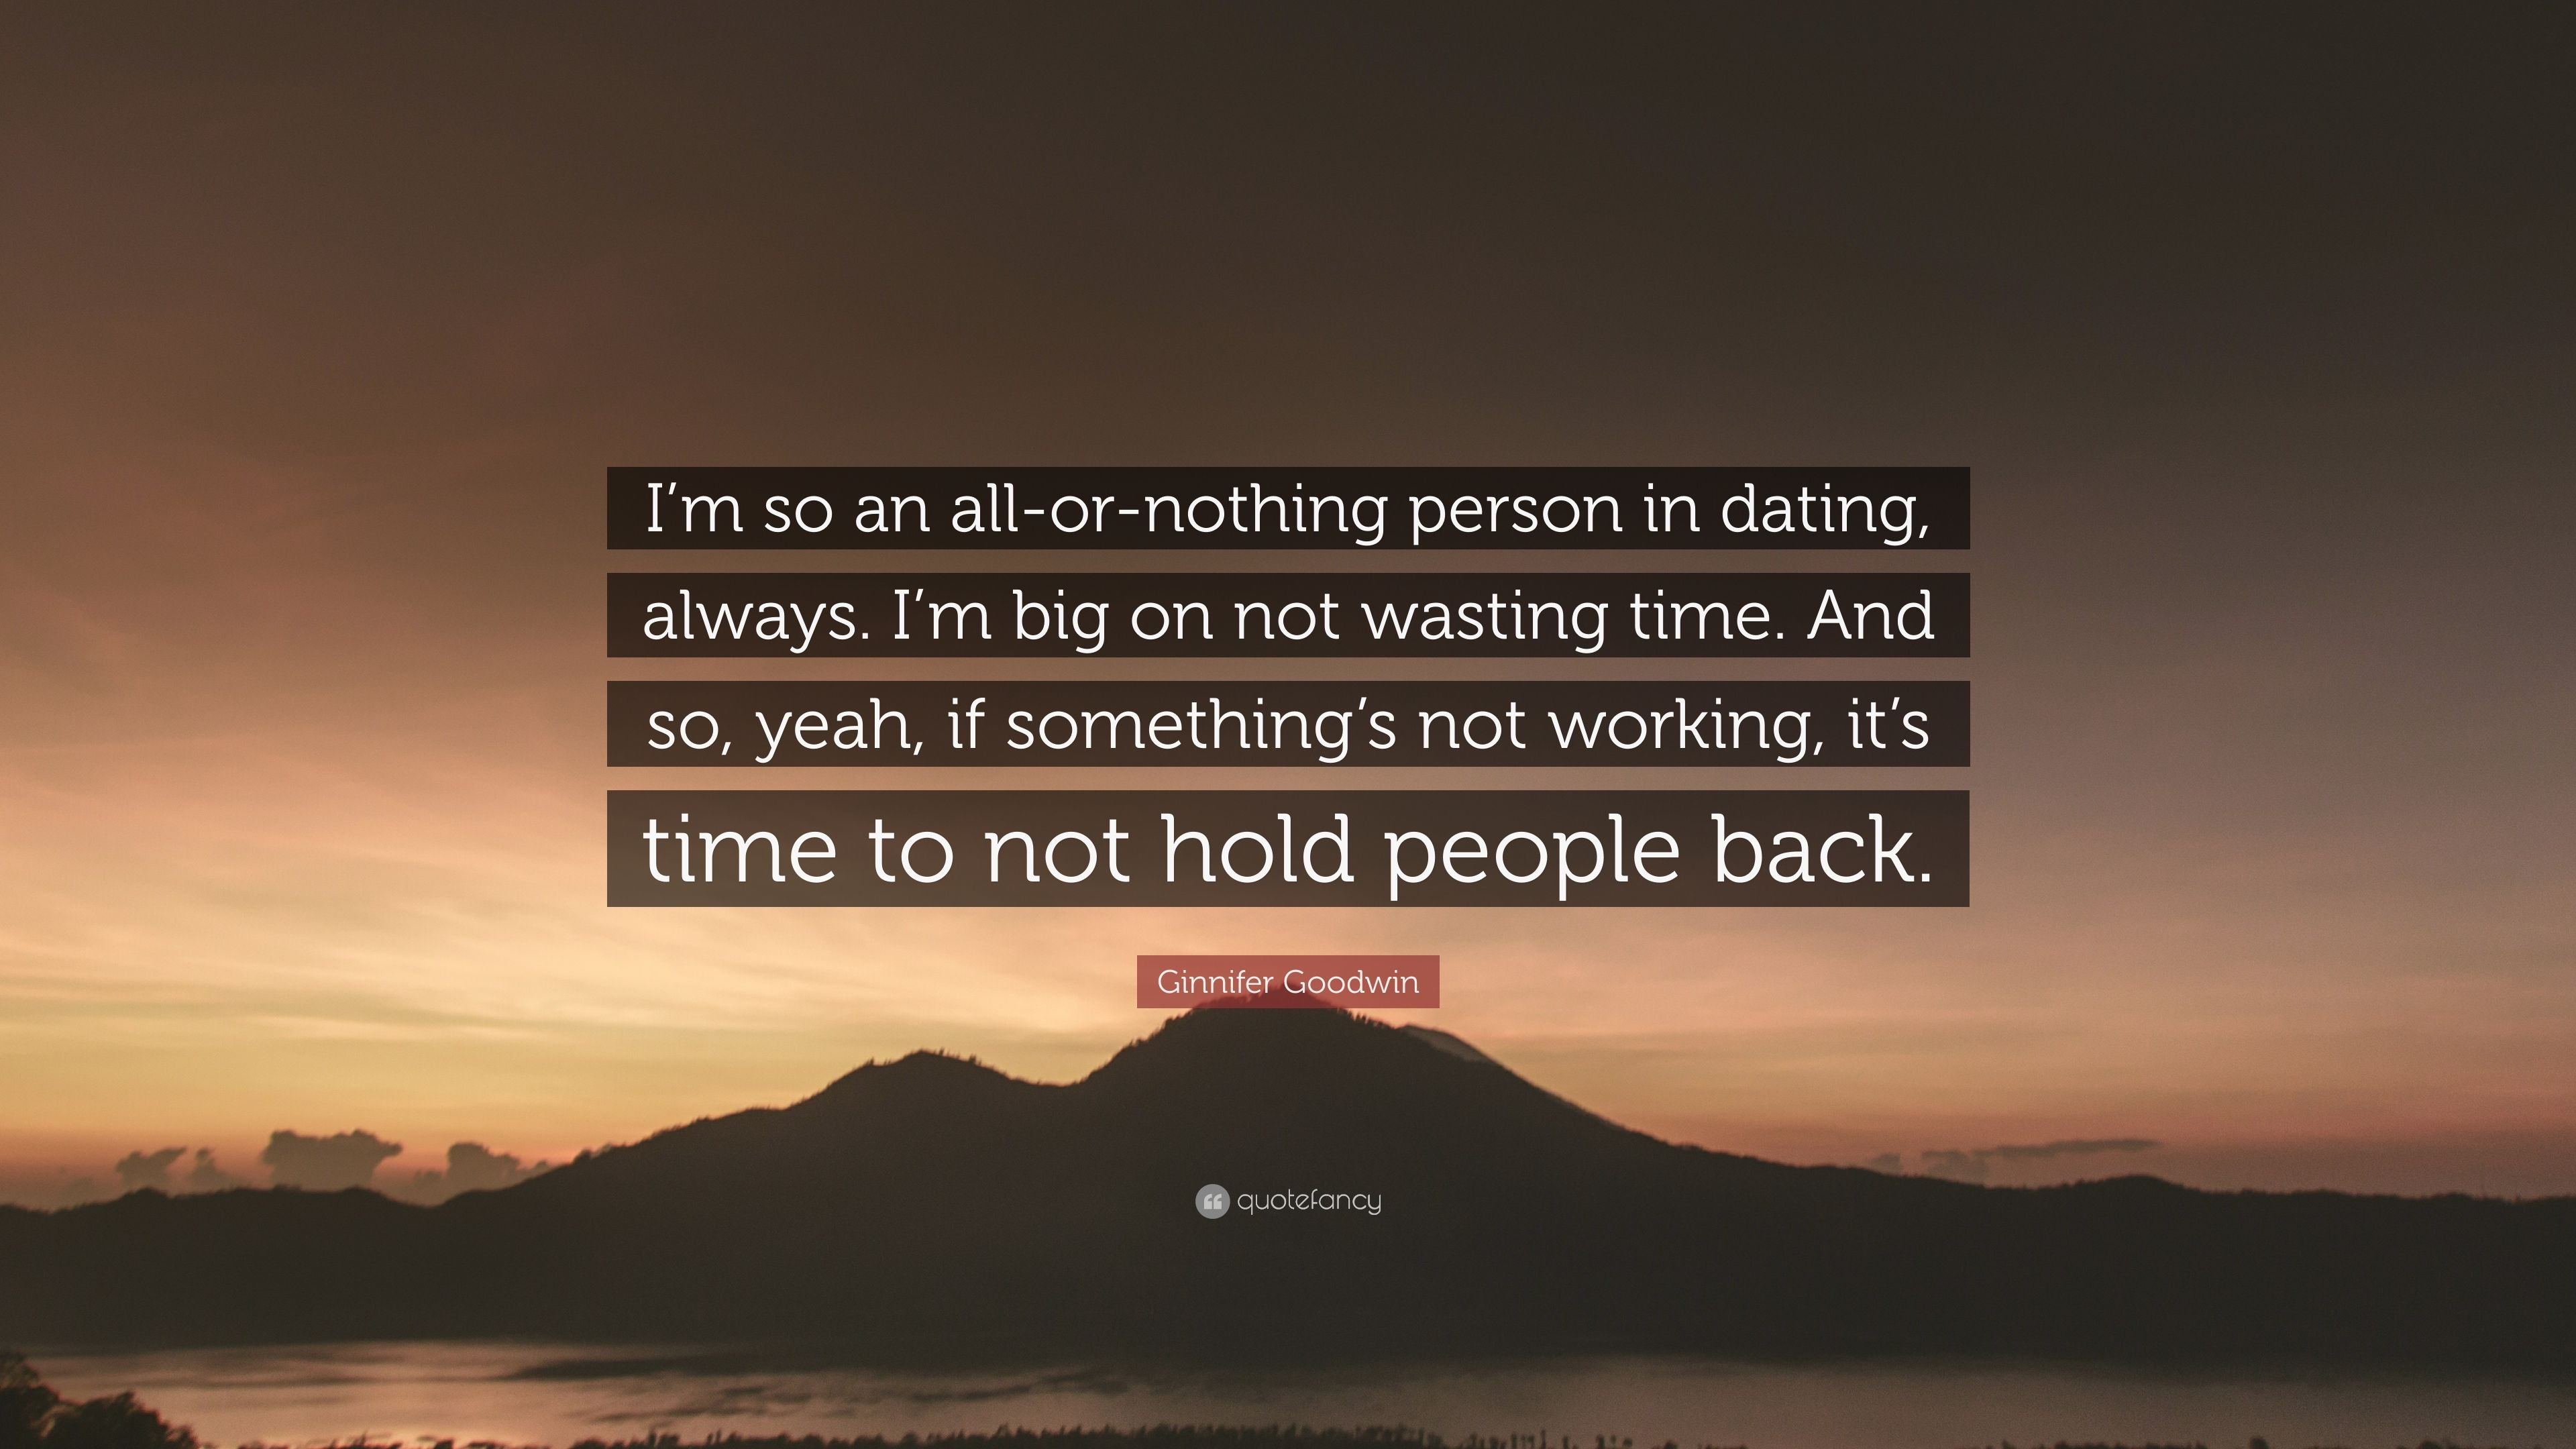 Dating all or nothing